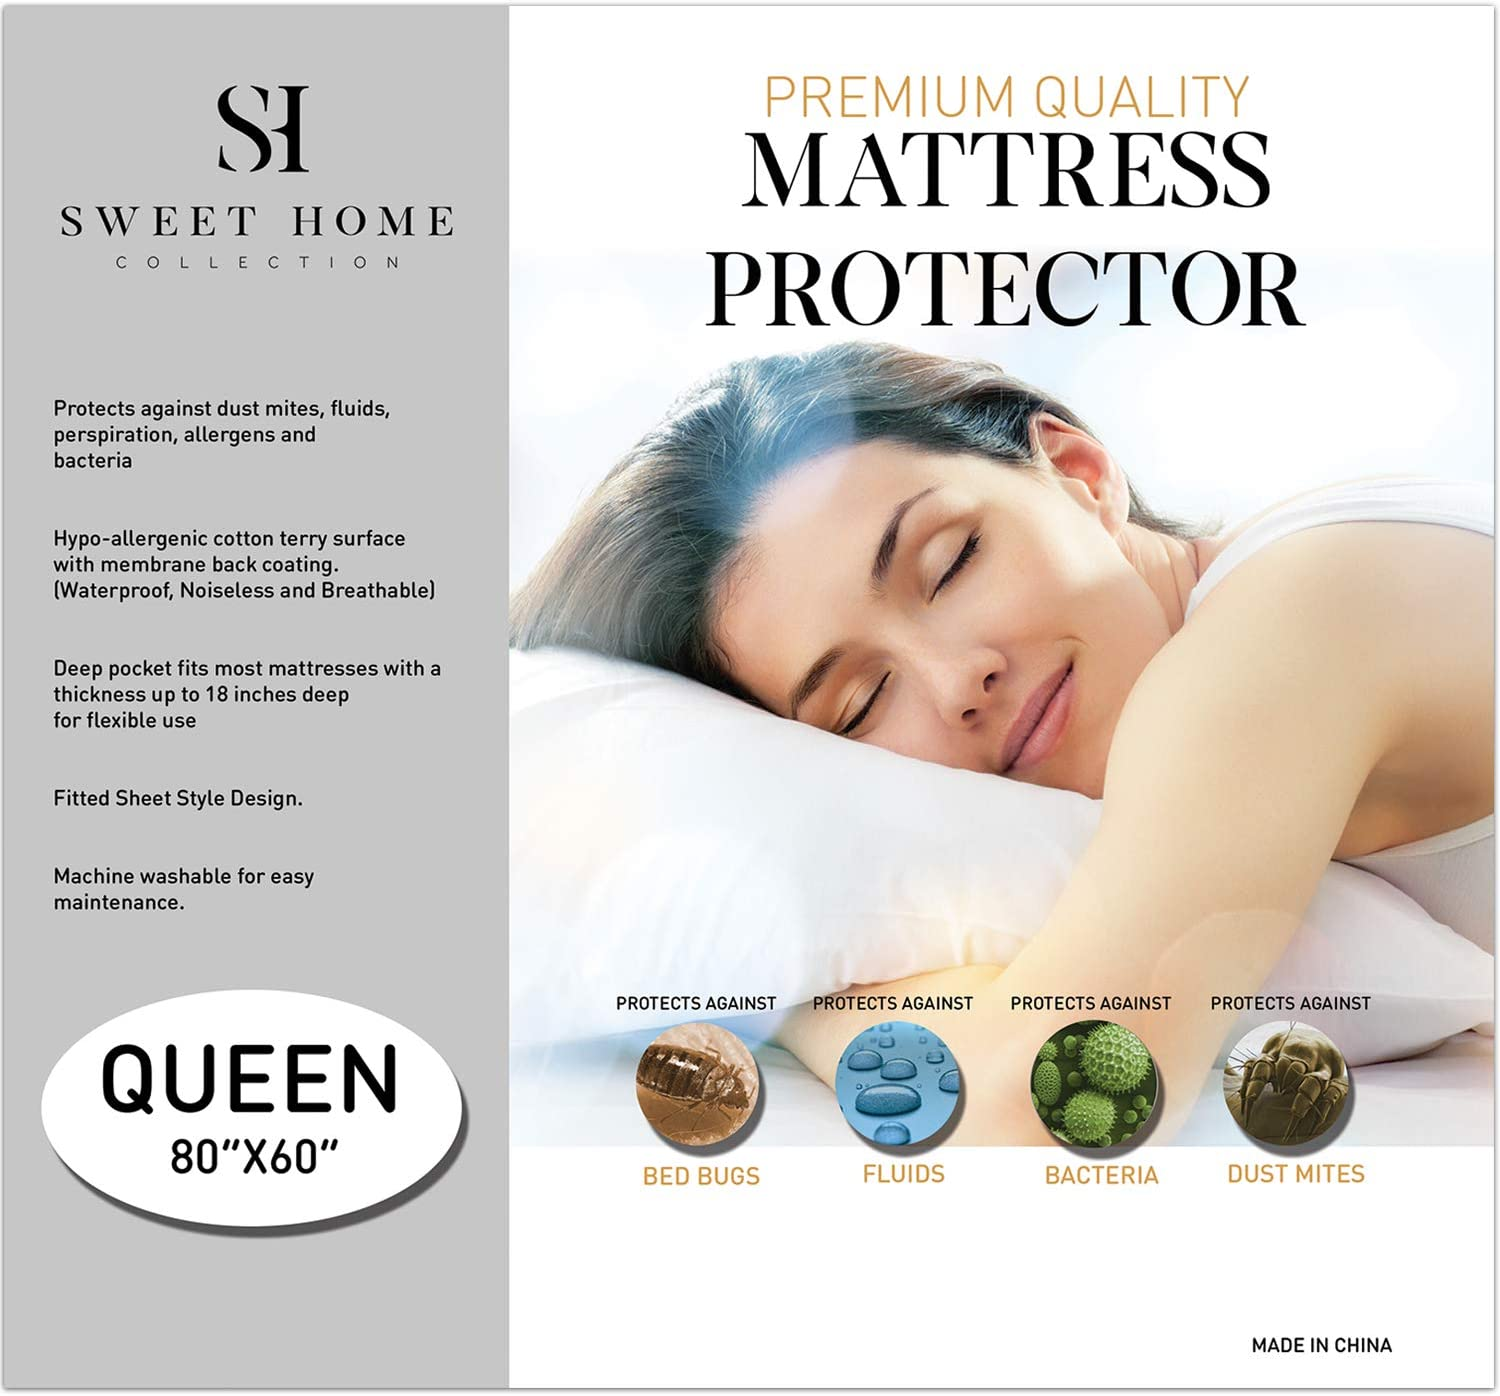 White Dust Mites Allergens Premium Waterproof Mattress Protector King Soft Cotton Bed Guard with Membrane Back Coating Hypoallergenic Mattress Cover Protects Against Bedwetting